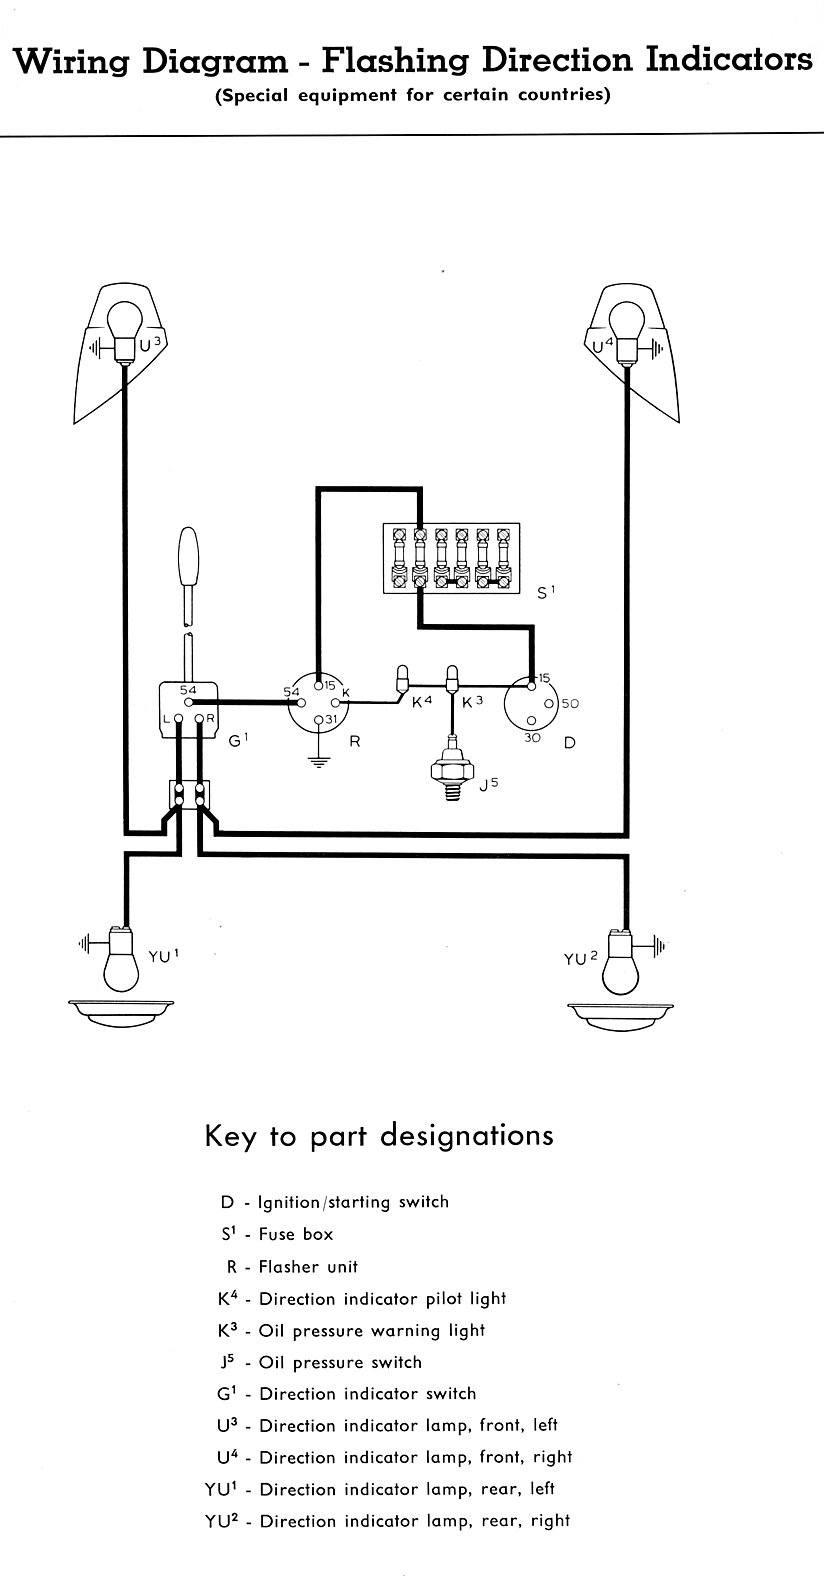 [FPER_4992]  EE8BD 1974 Chevy C10 Ignition Switch Wiring Diagram | Wiring Library | International Bus Wiring Diagrams |  | Wiring Library